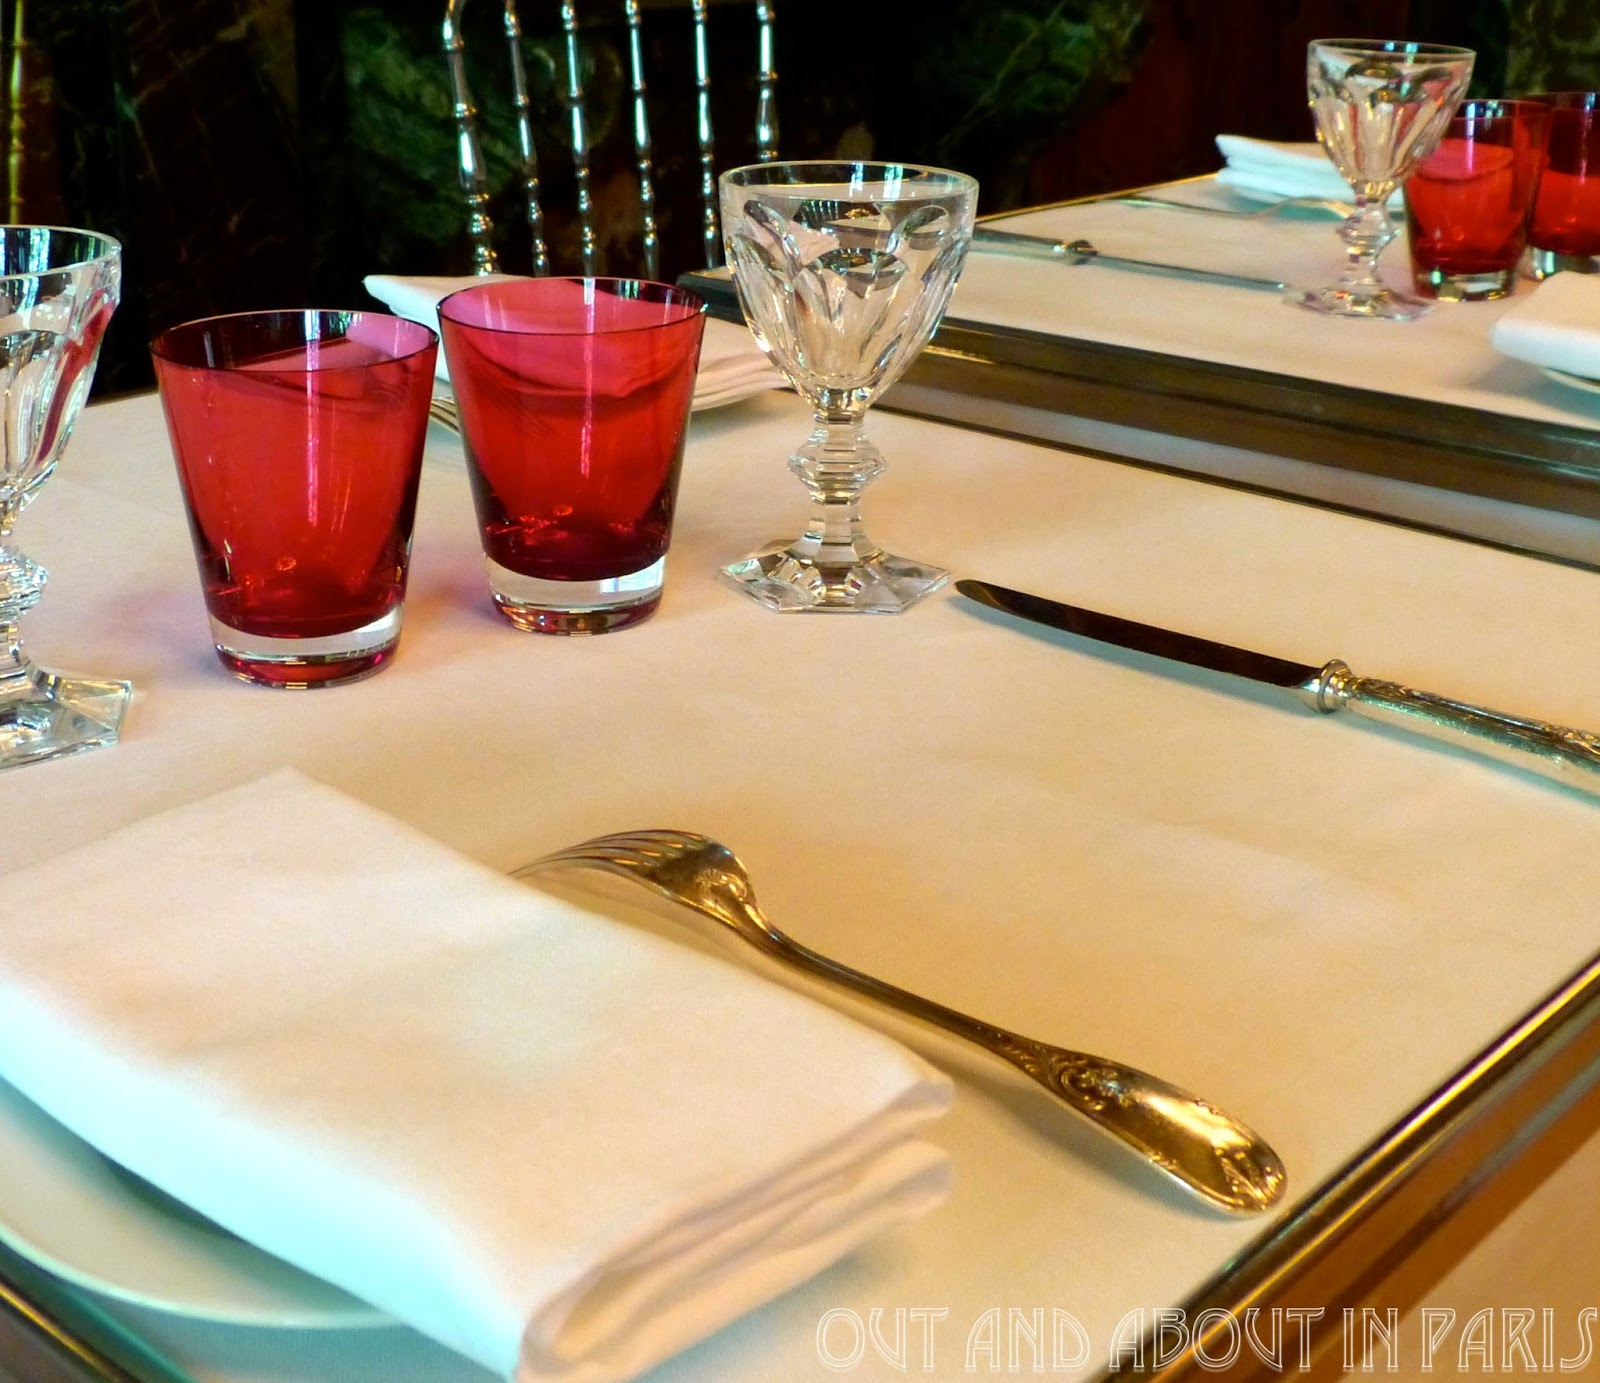 A table for two at La Cristal